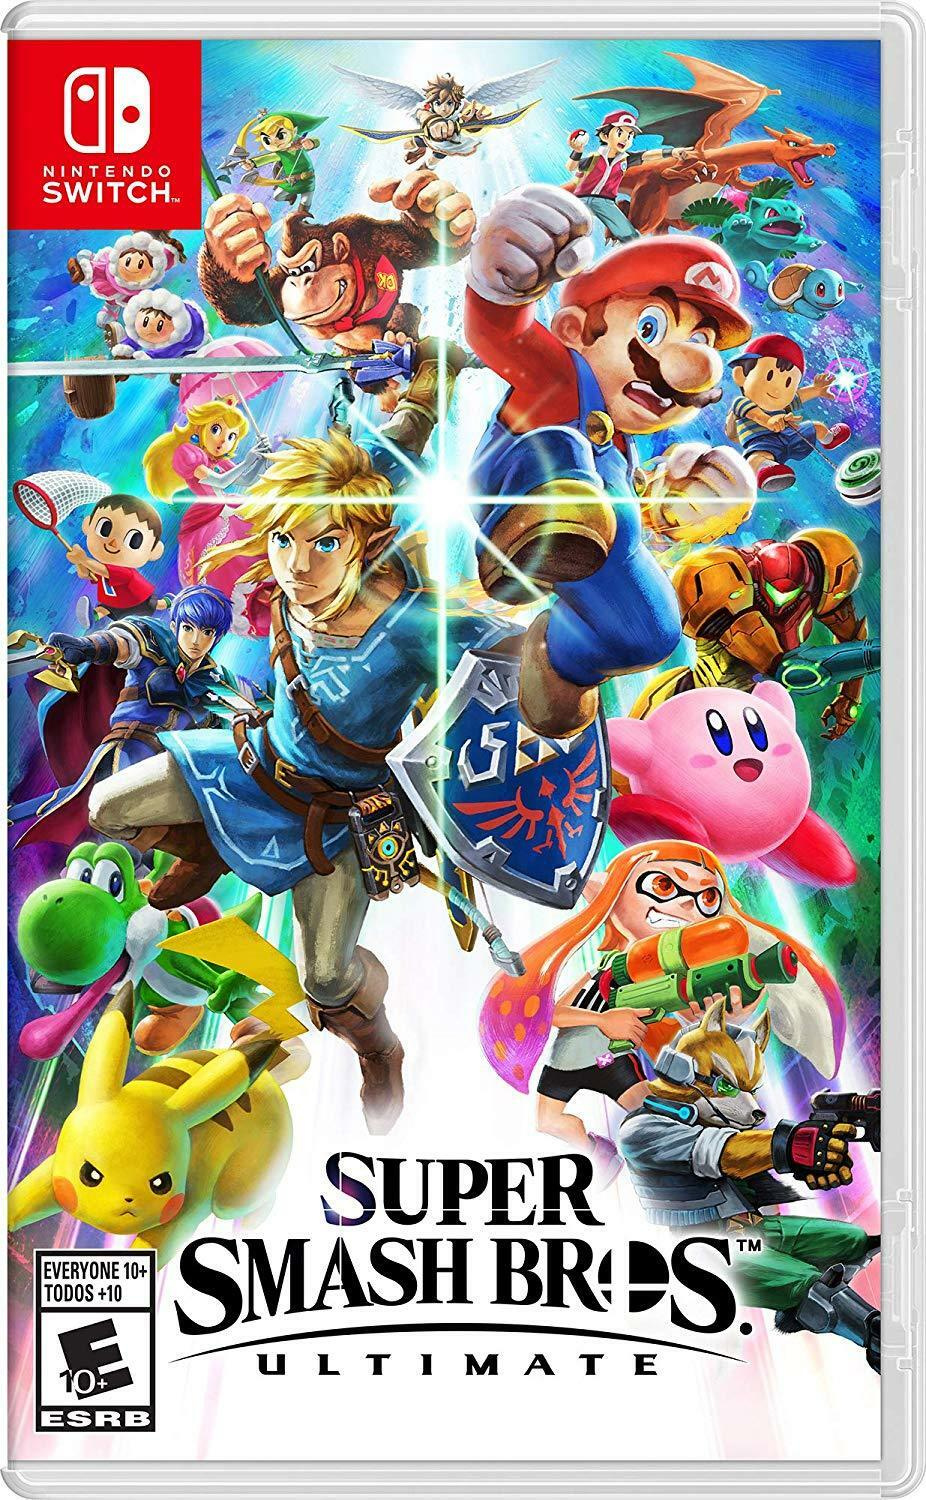 Nintendo Switch Games: Super Smash Bros. Ultimate